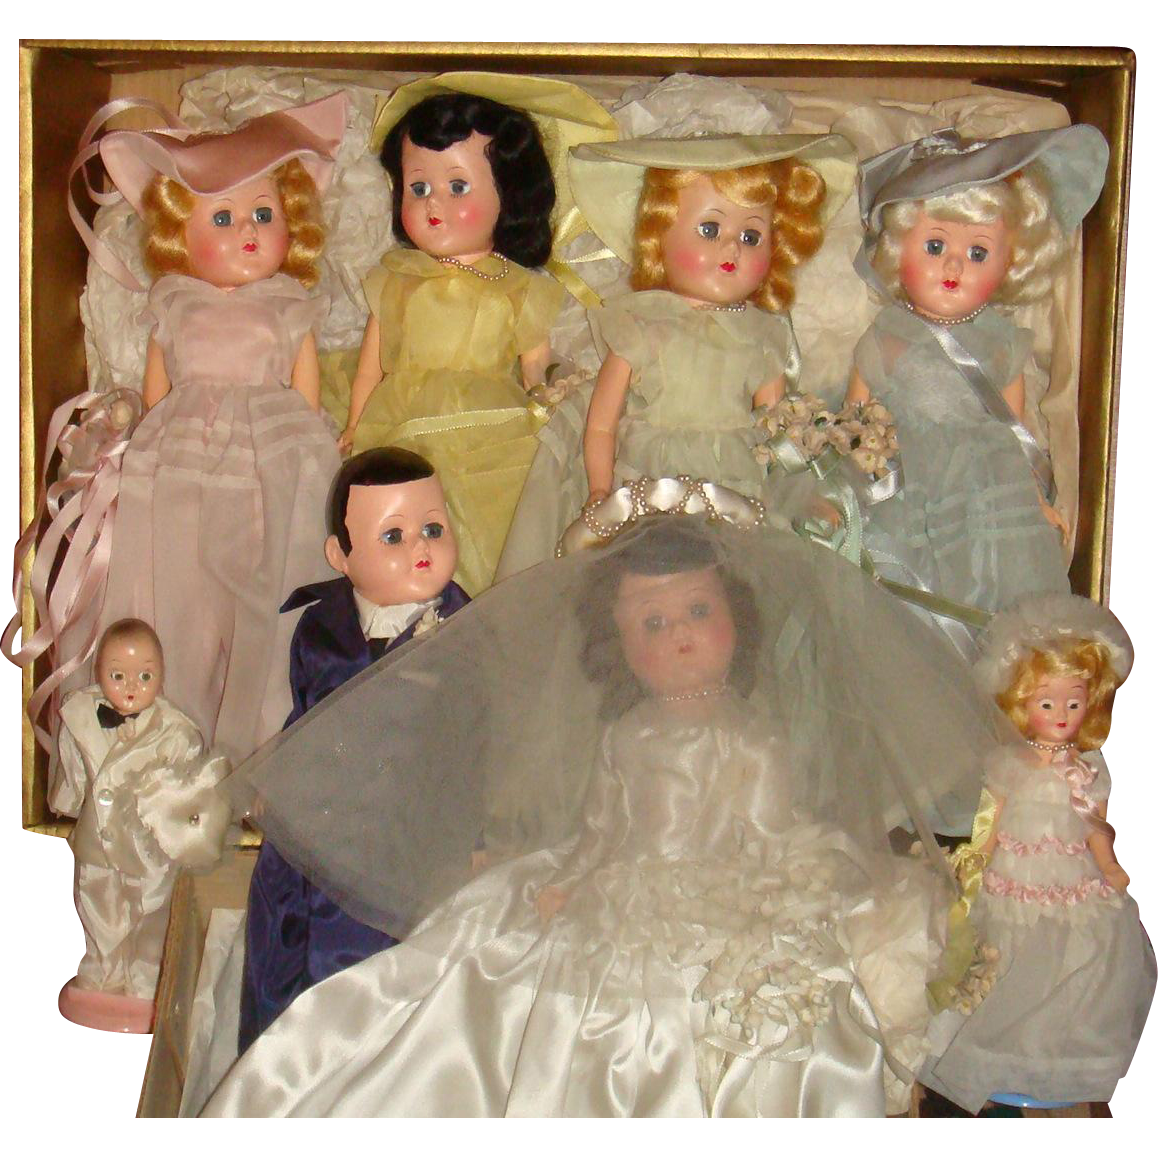 1946 Facsimile of Complete Wedding Party Dolls Bride, Groom, Bridesmaids, Flower Girl, Ring Bearer